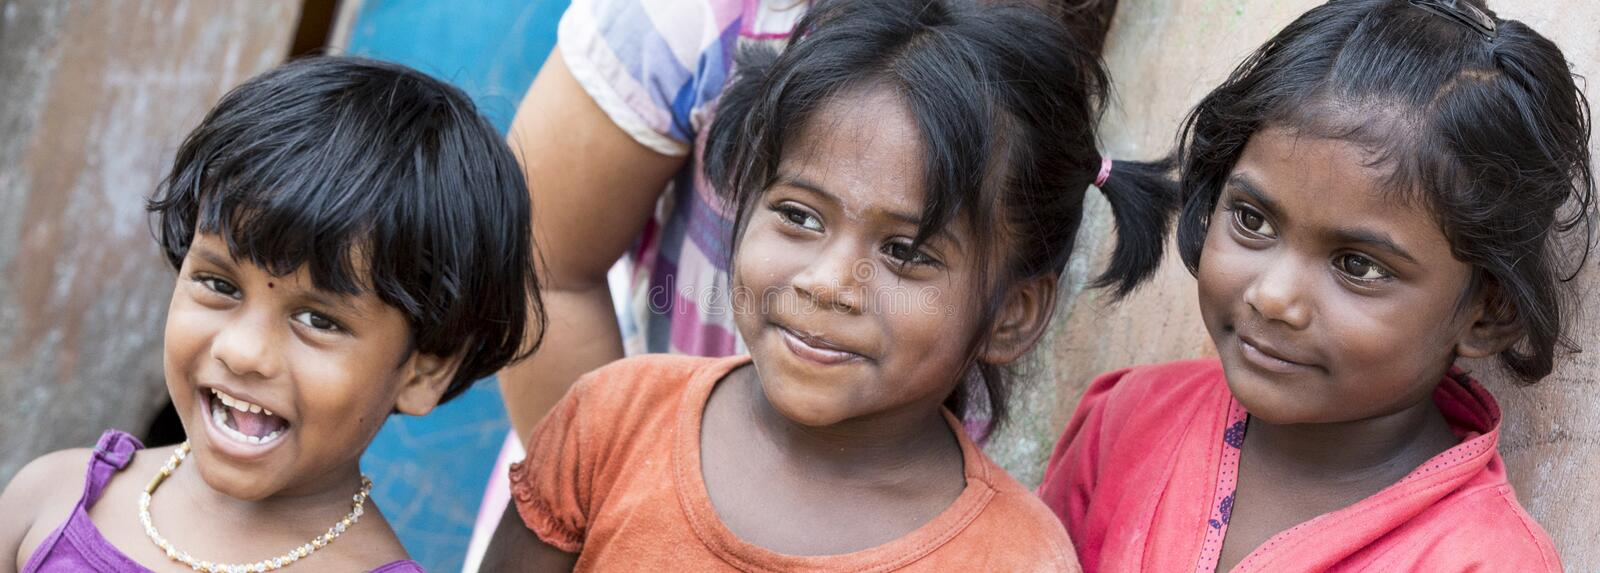 Portrait of 3 unidentified Indian poor kid girl child is smiling outddor in the street. PONDICHERY, PUDUCHERRY, TAMIL NADU, INDIA - SEPTEMBER CIRCA, 2017 stock images